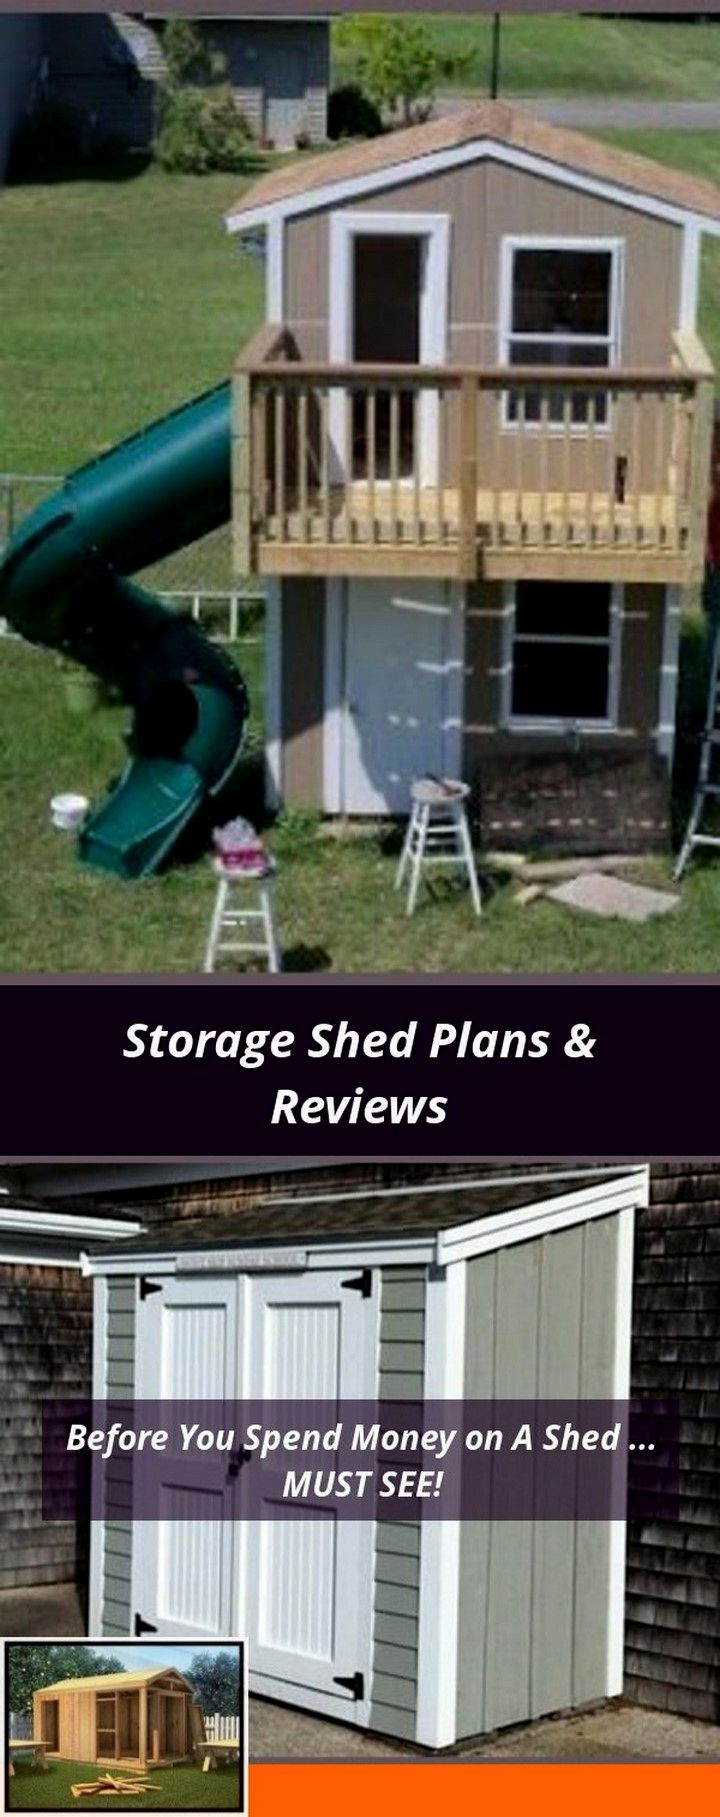 Diy portable shed plans how much does it cost to build a